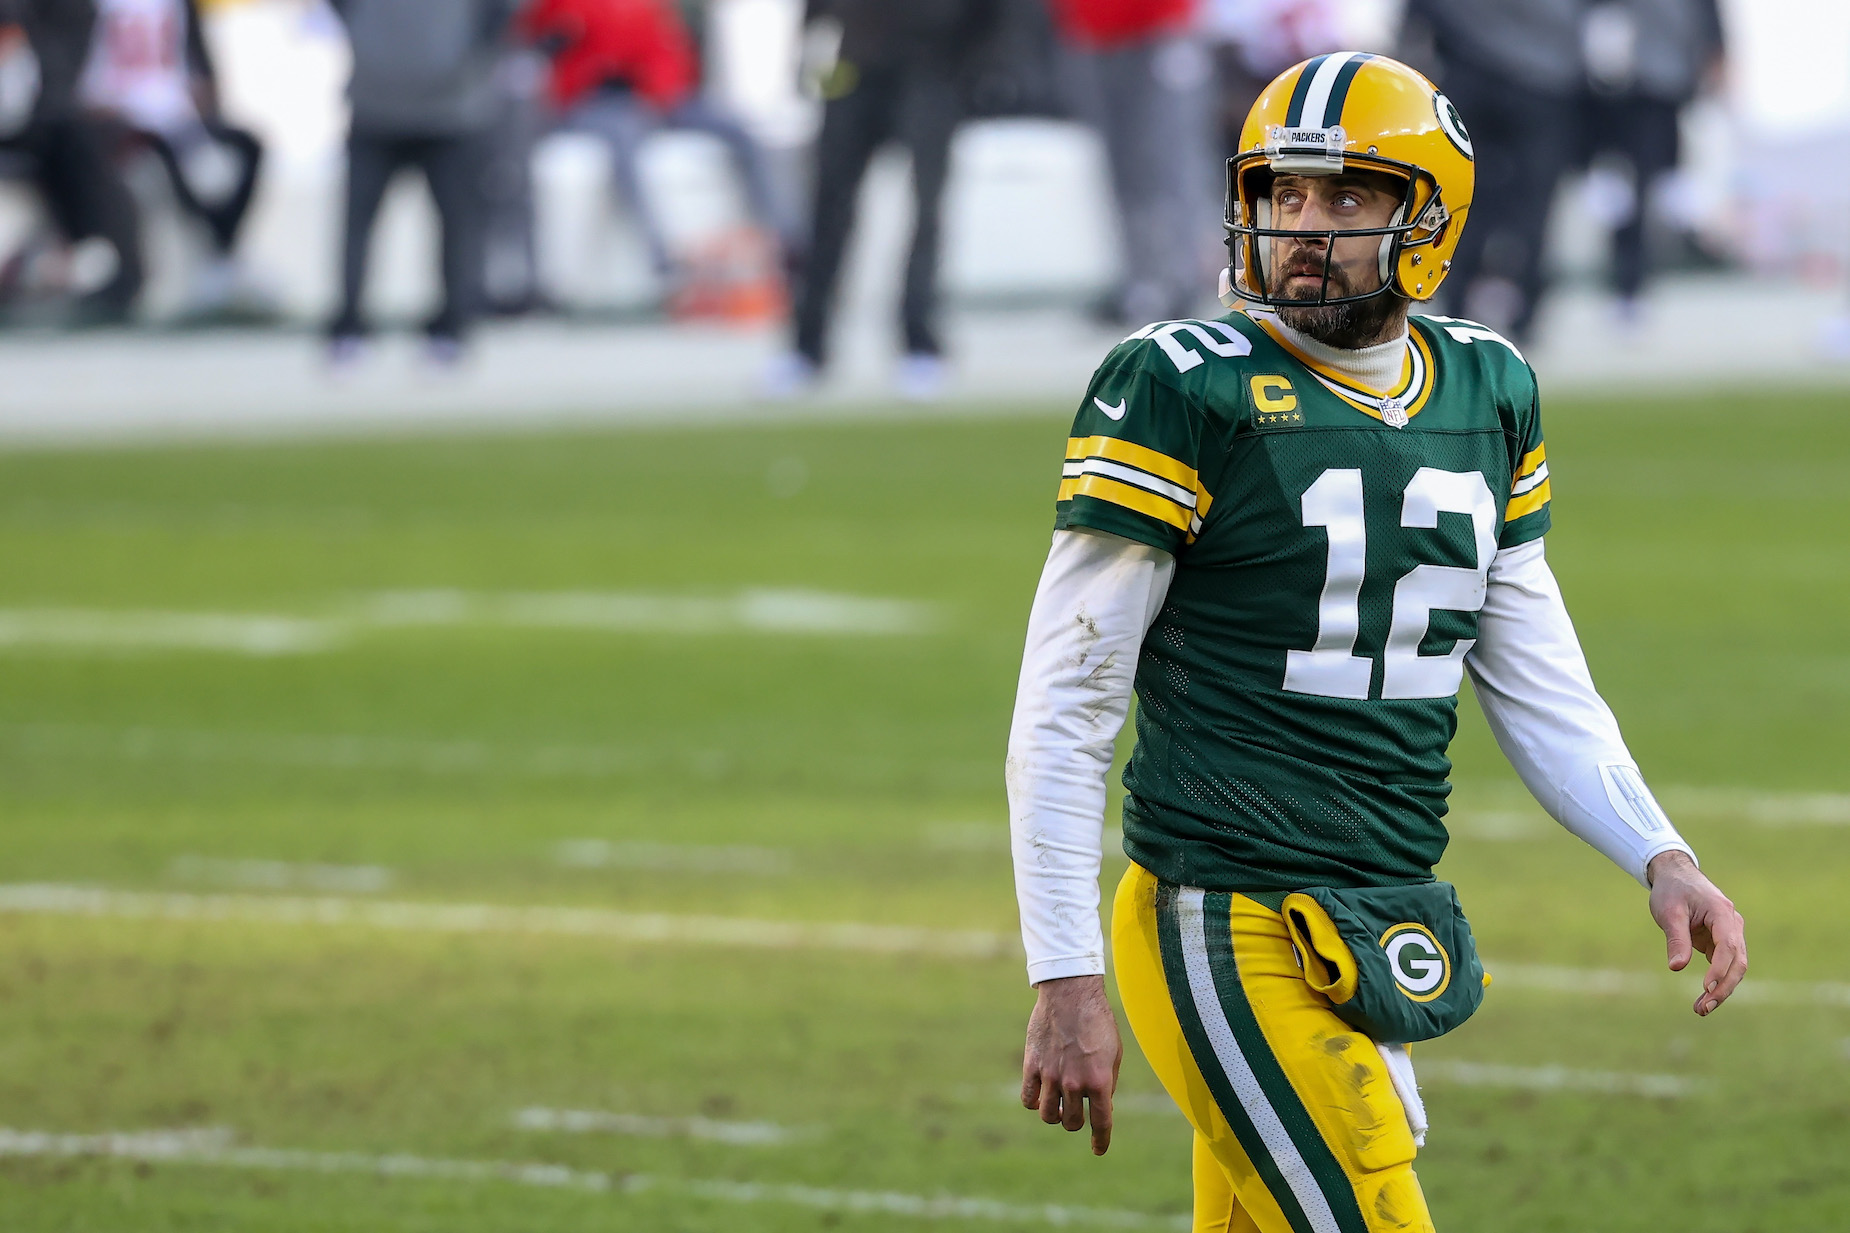 The Green Bay Packers' Offseason Issues Now Go Beyond Aaron Rodgers' Absence and Could Already Be Ruining Jordan Love's Chances of Success